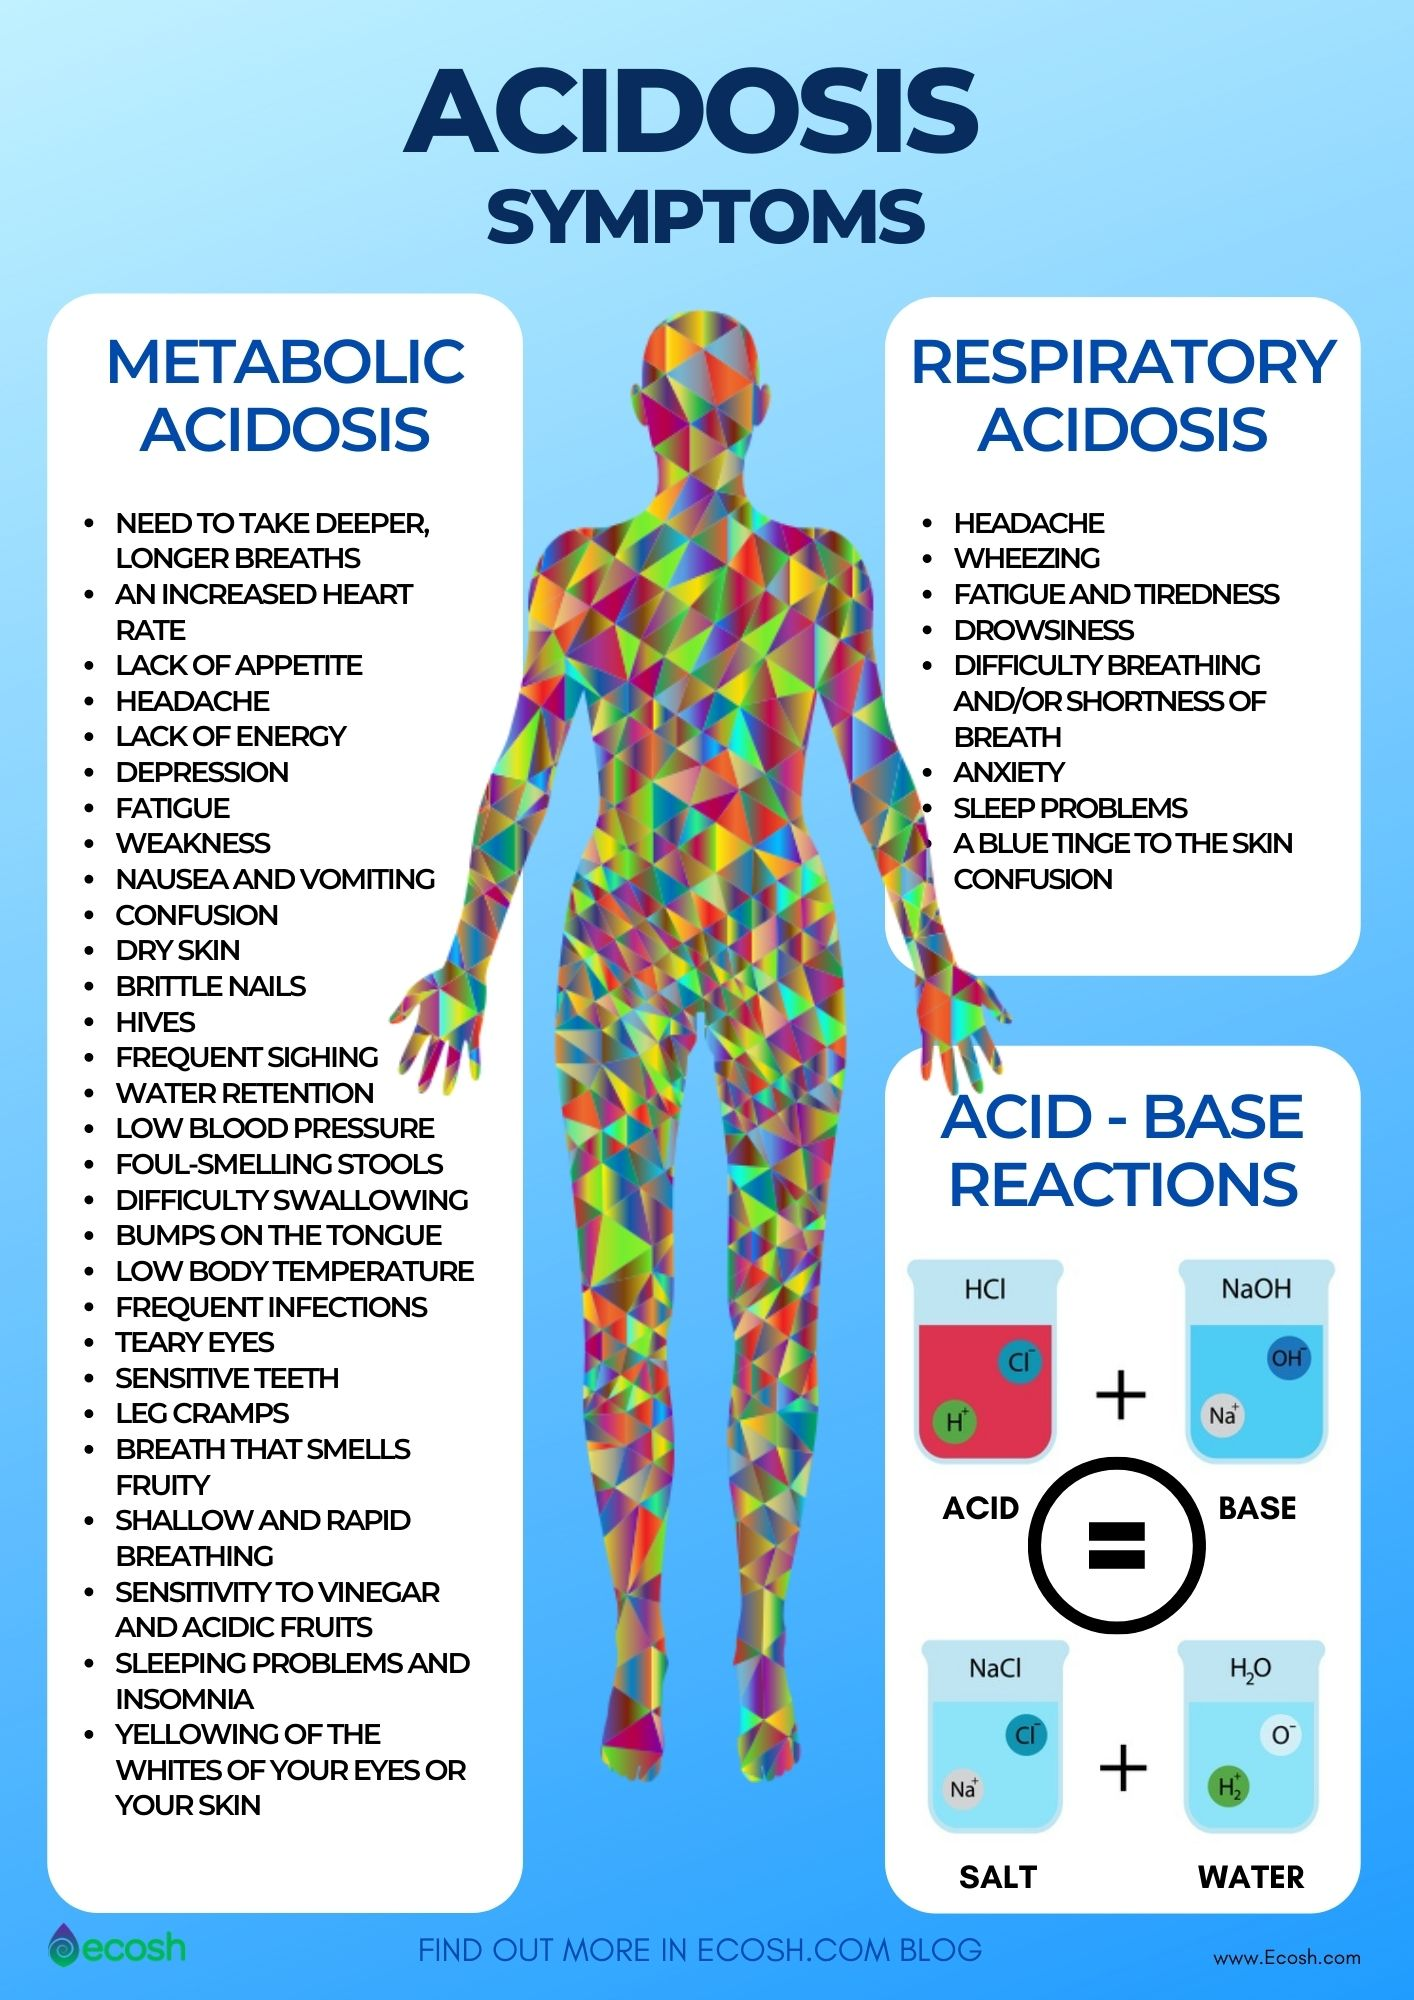 Acidosis_Symptoms_Respiratory_Acidosis_Symptoms_Metabolic_Acidosis_Symptoms_Acid_Base_Balance_How_to_Know_If_You_Have_Acidosis_How_to_Know_If_Your_Body_is_Acidic